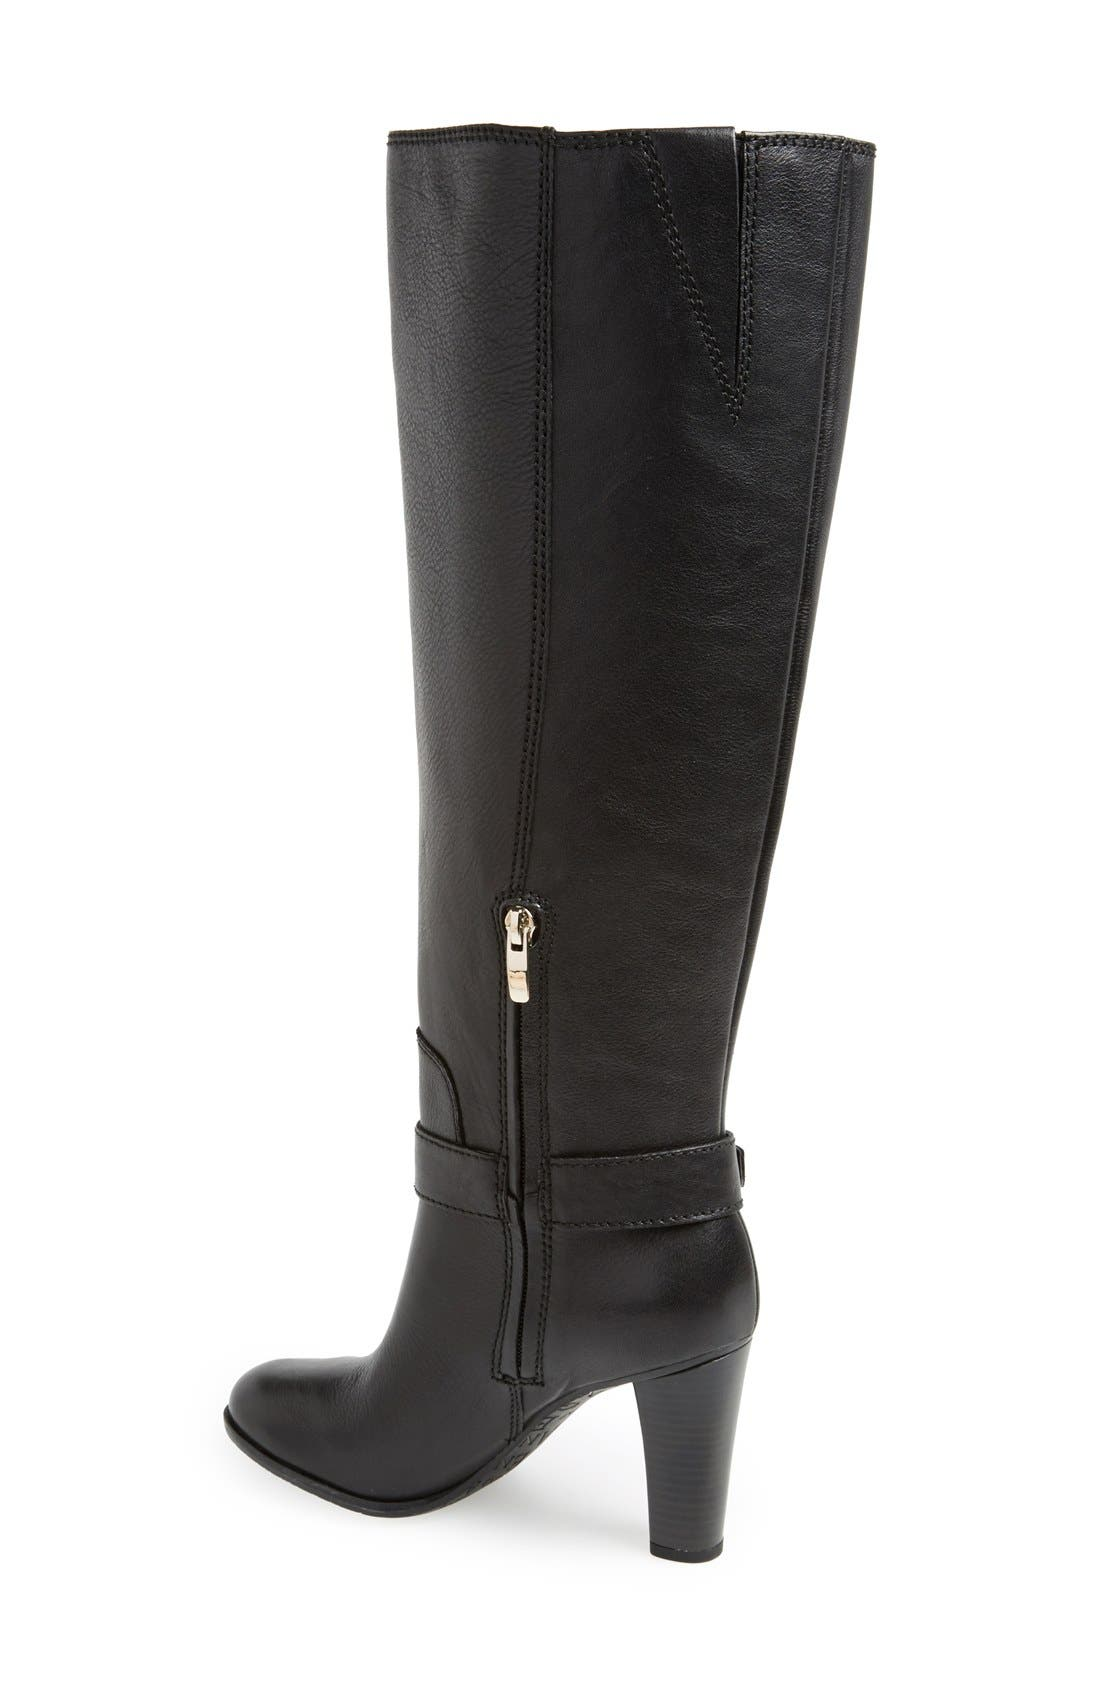 Alternate Image 2  - Enzo Angiolini 'Sumilo' Boot (Wide Calf) (Women)